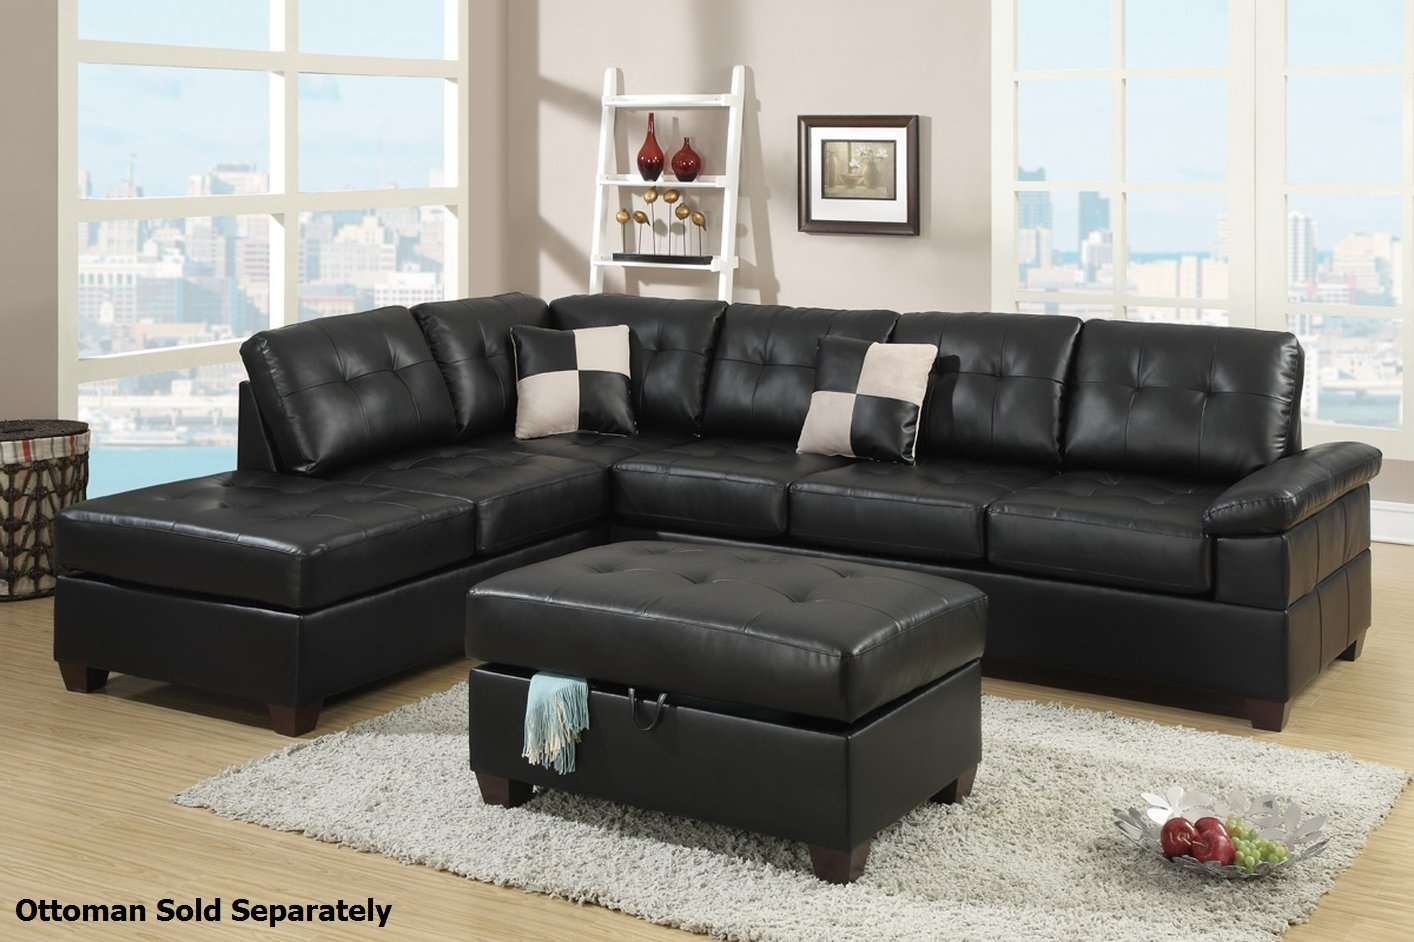 Beautiful Sectional Sofas Rooms To Go 77 For Office Sofa Ideas With Intended For Rooms To Go Sectional Sofas (Image 2 of 10)